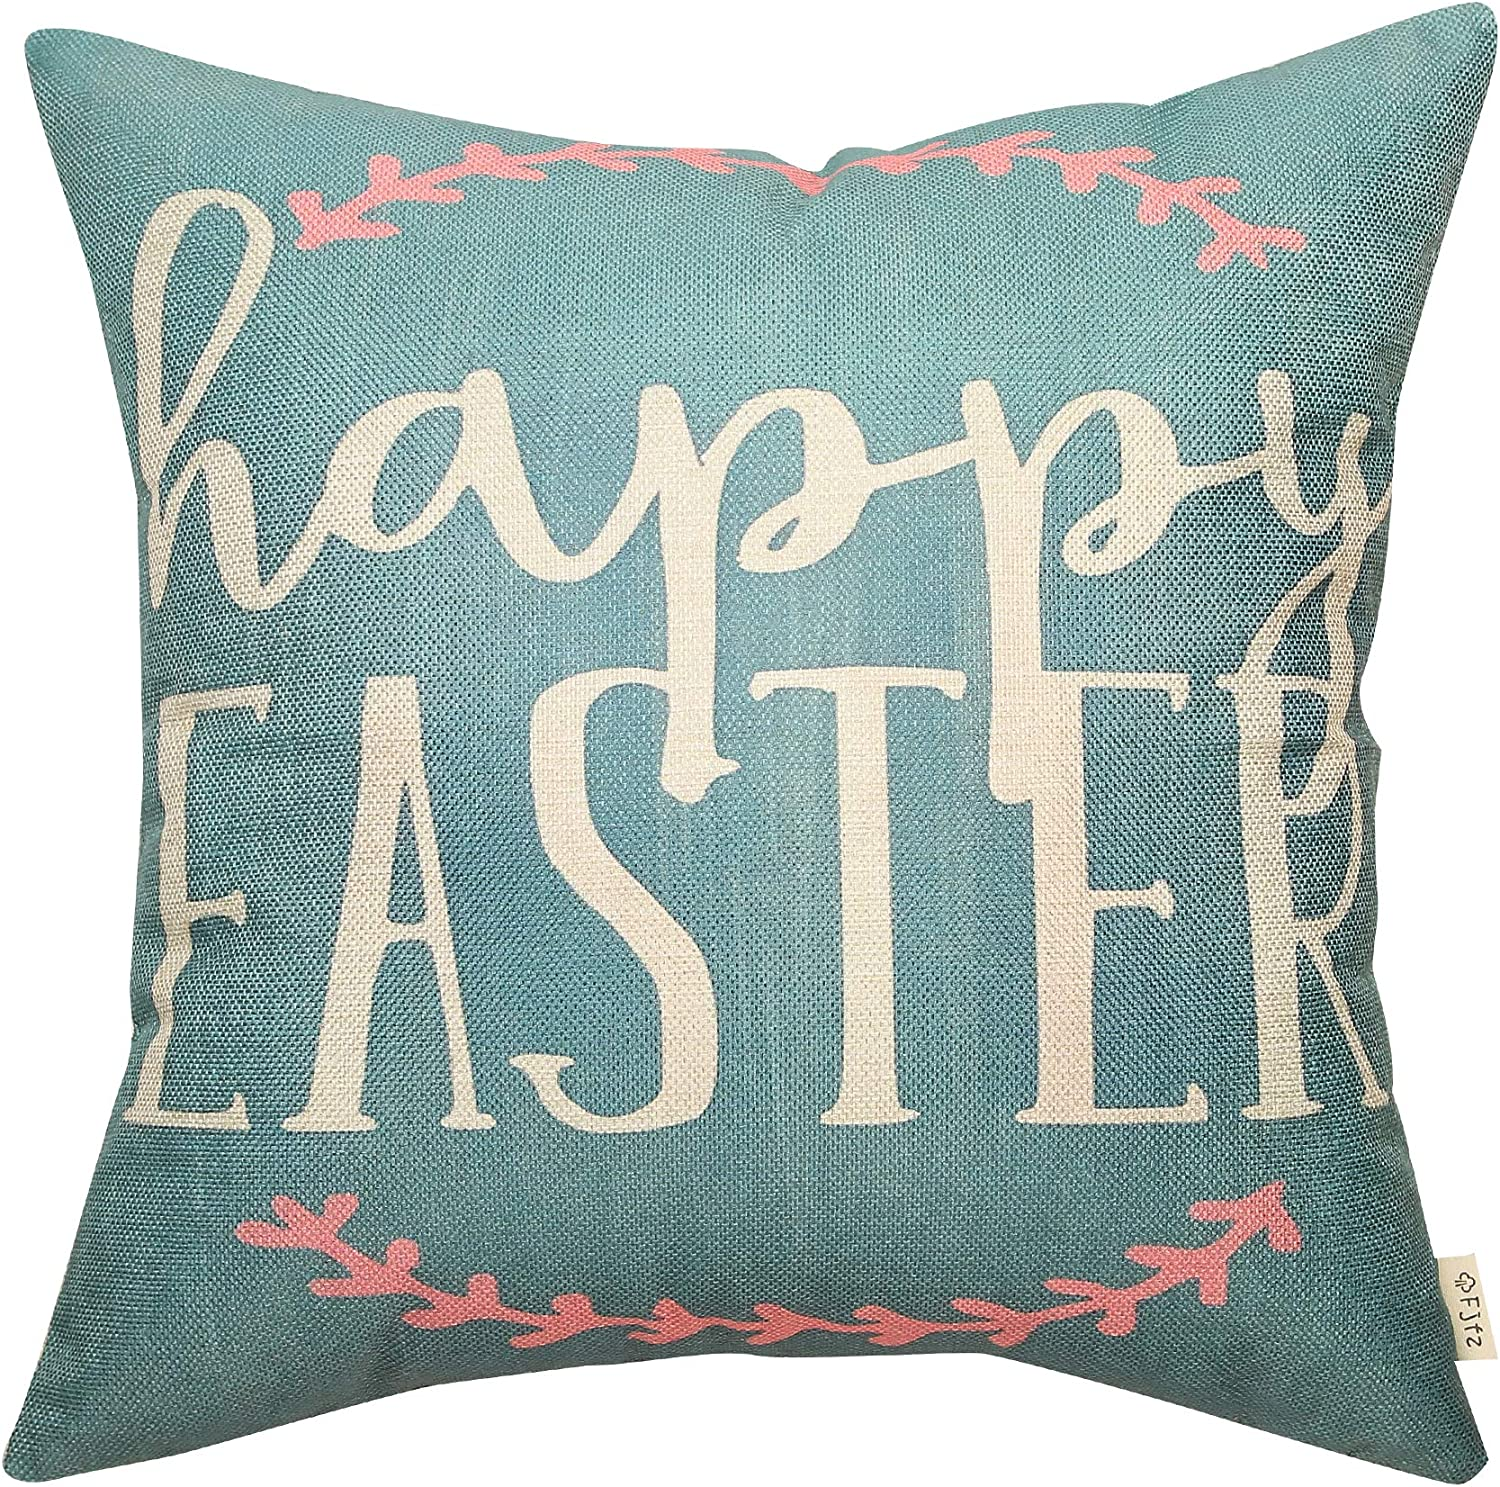 Fjfz Rustic Farmhouse Decor Happy Easter Sign Spring Sign Cotton Linen Home Decorative Throw Pillow Case Cushion Cover with Words for Sofa Couch, 18